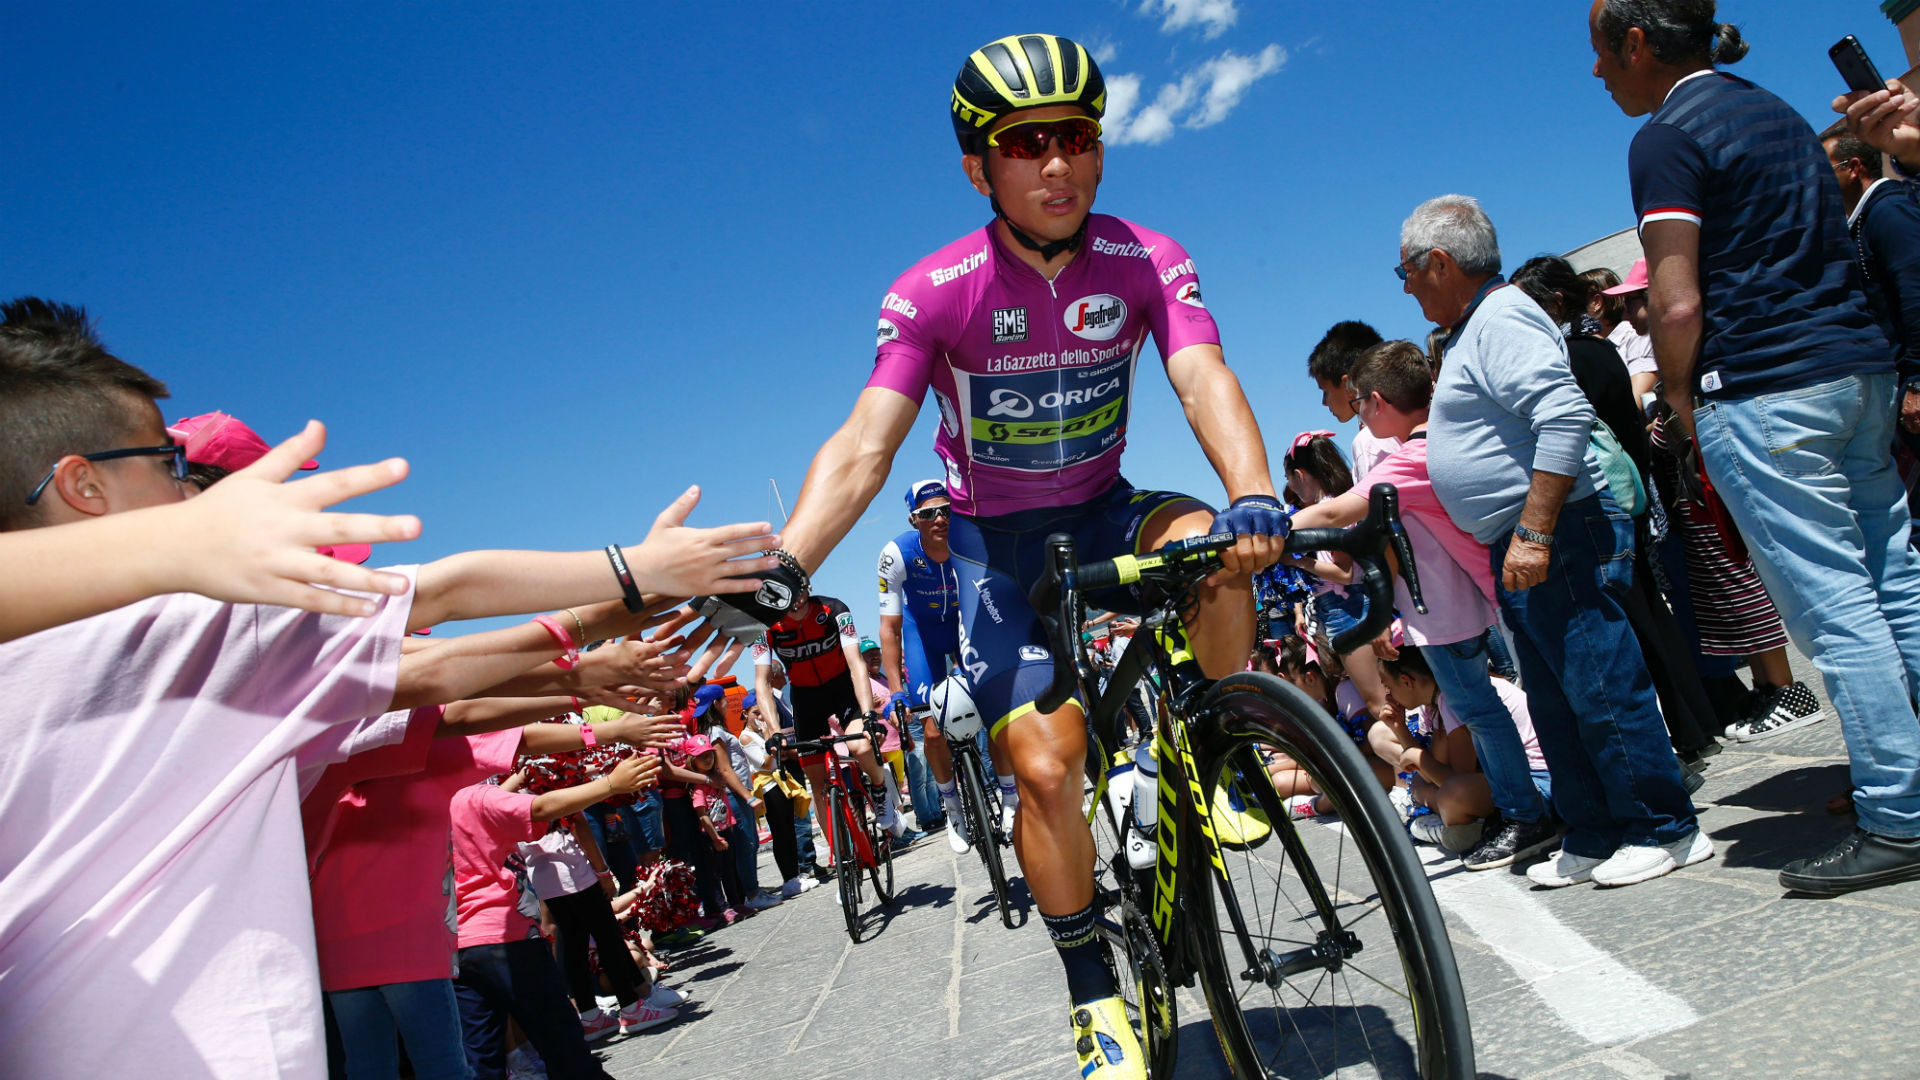 Gaviria wins 3rd stage of Giro to move into overall lead